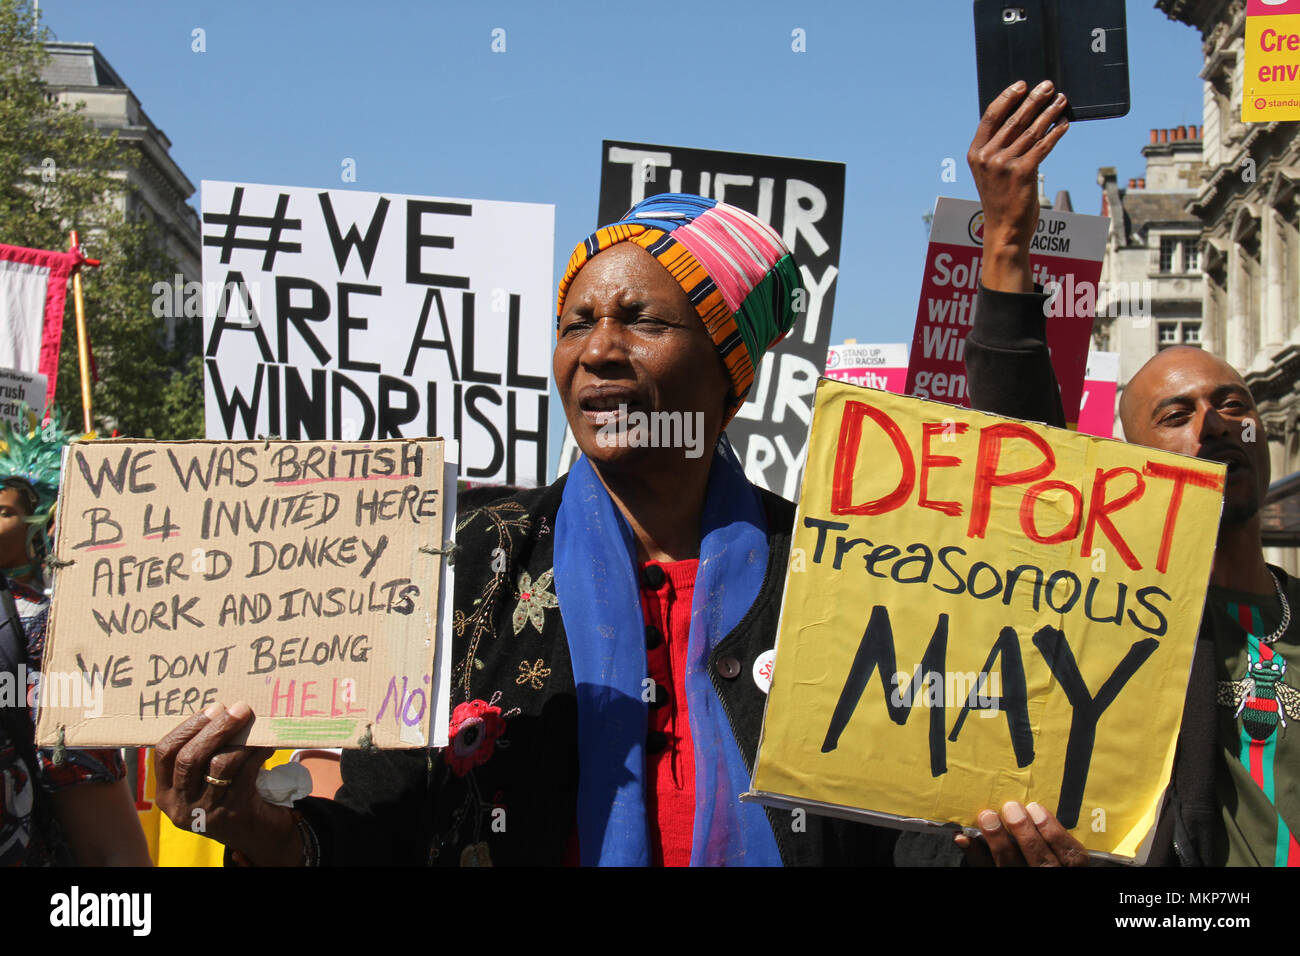 """Whitehall, London- UK: 5 May 2018. Hundreds of people joined the March for Windrush at Whitehall on 5th May, to protest against the """"Hostile environment"""" that has targeted the Windrush generation. A generation of people who were invited from Commonwealth countries as UK citizens have been subject to deportation from  the UK. Credit: David Mbiyu /Alamy Live News - Stock Image"""